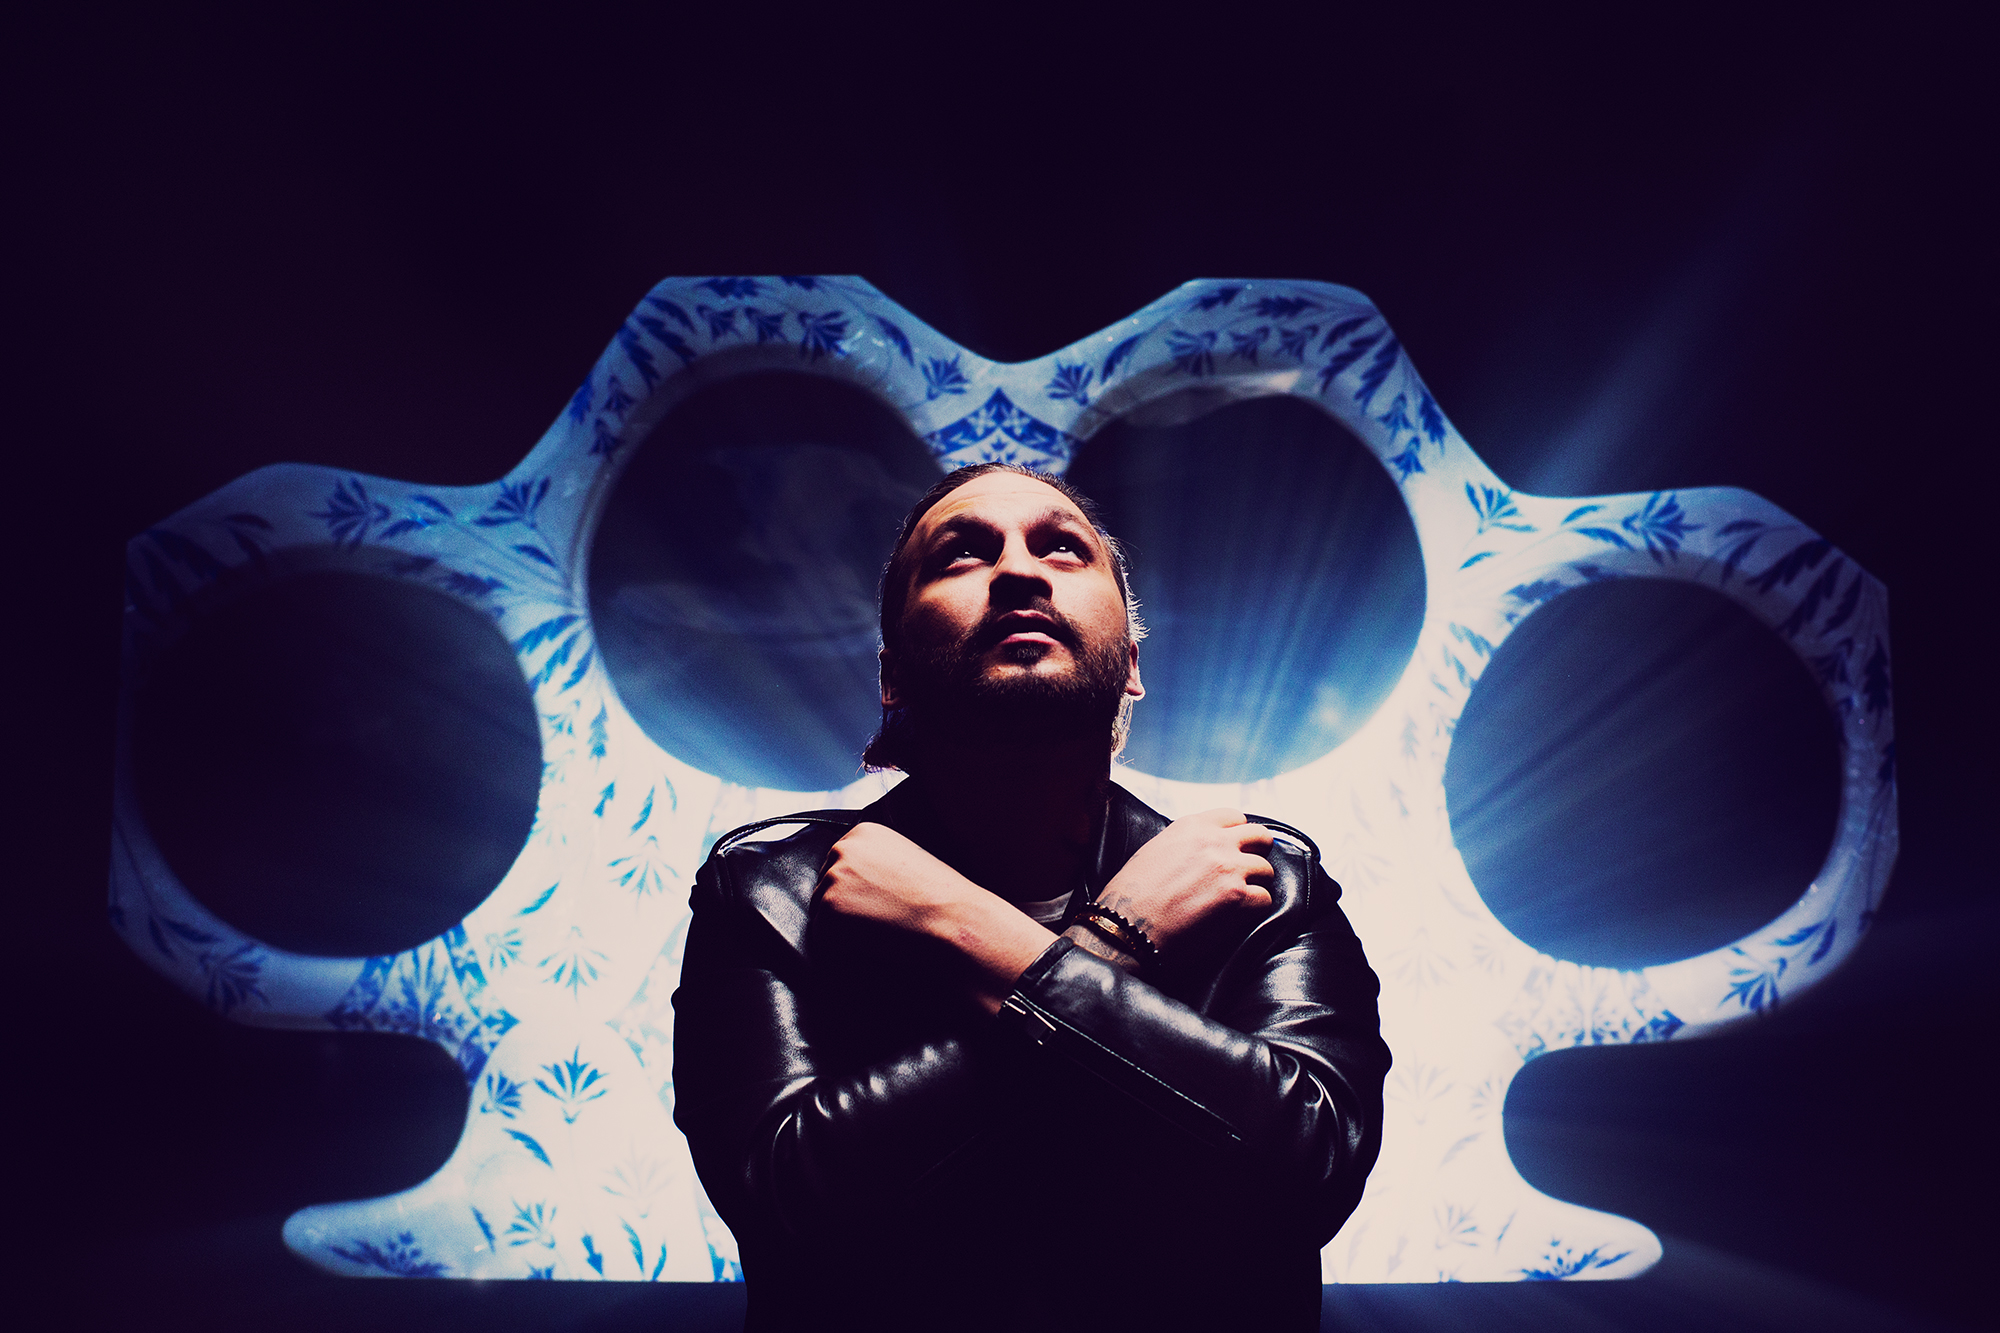 steve angello wild youth album picture